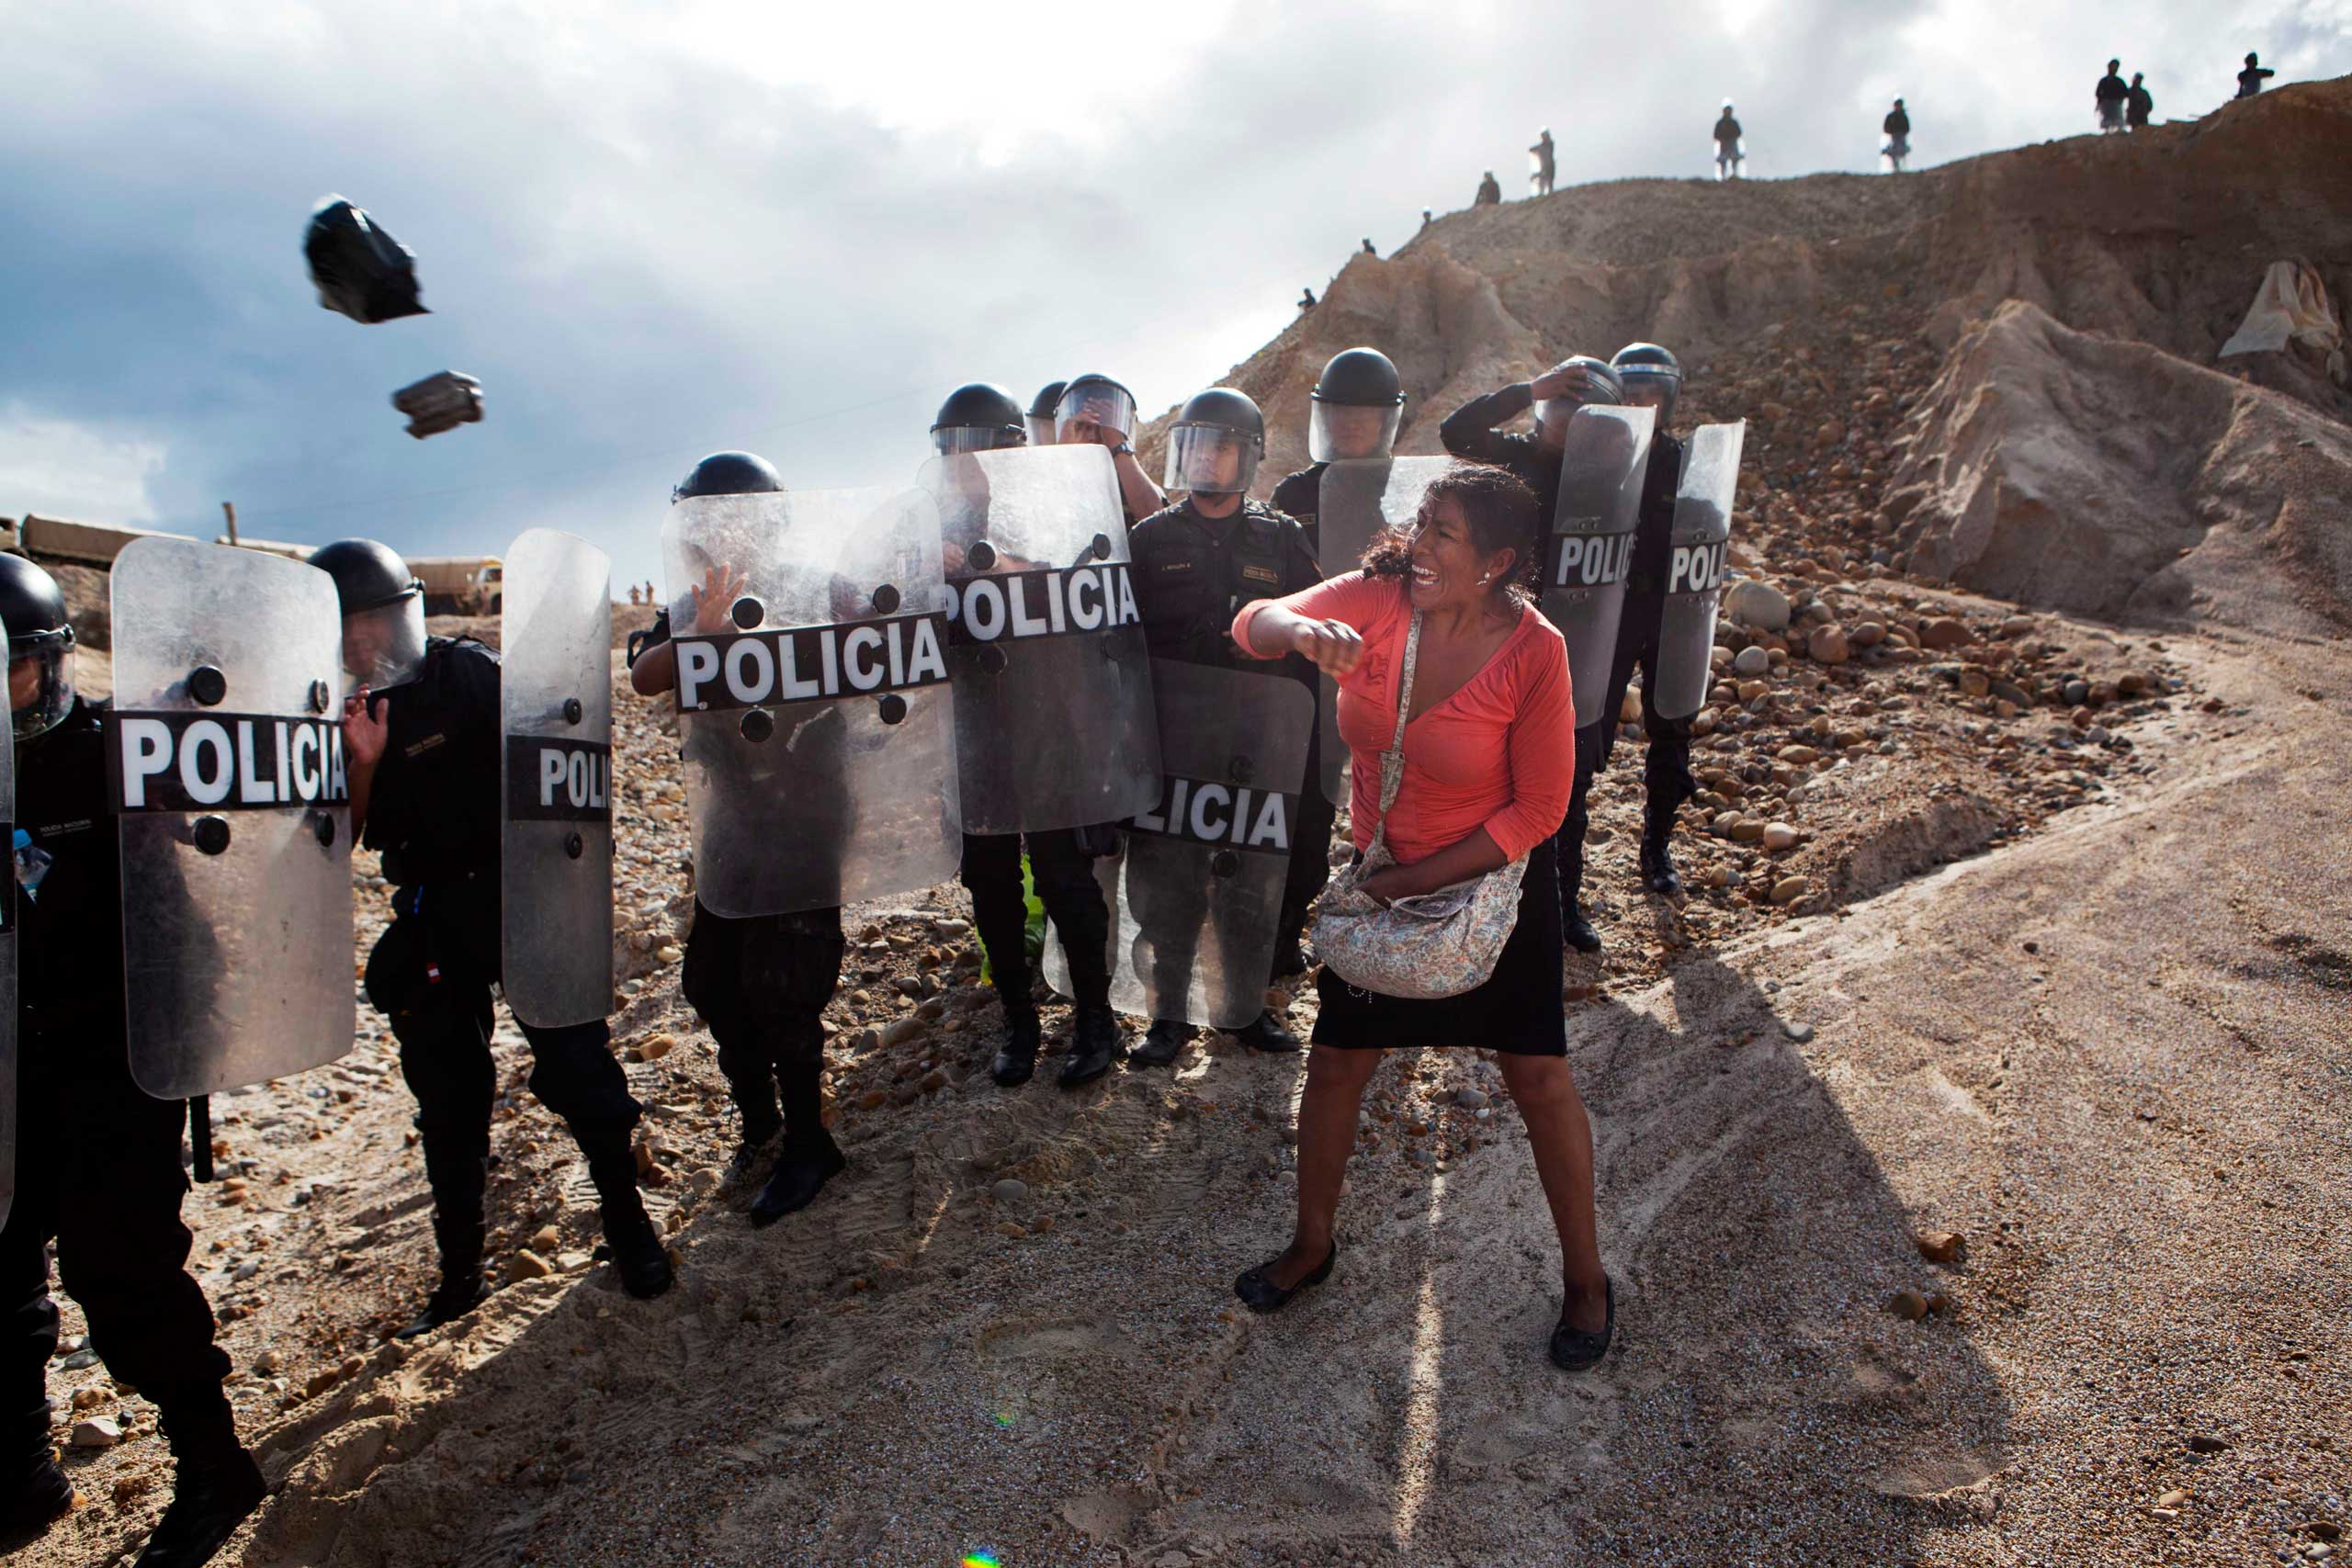 Peru: Protest against government's crackdown on illegal gold mining.A woman throws a rock and a bag at police blocking her from getting home in the Huepetuhe district of the Madre de Dios region of Peru., April 28, 2014.